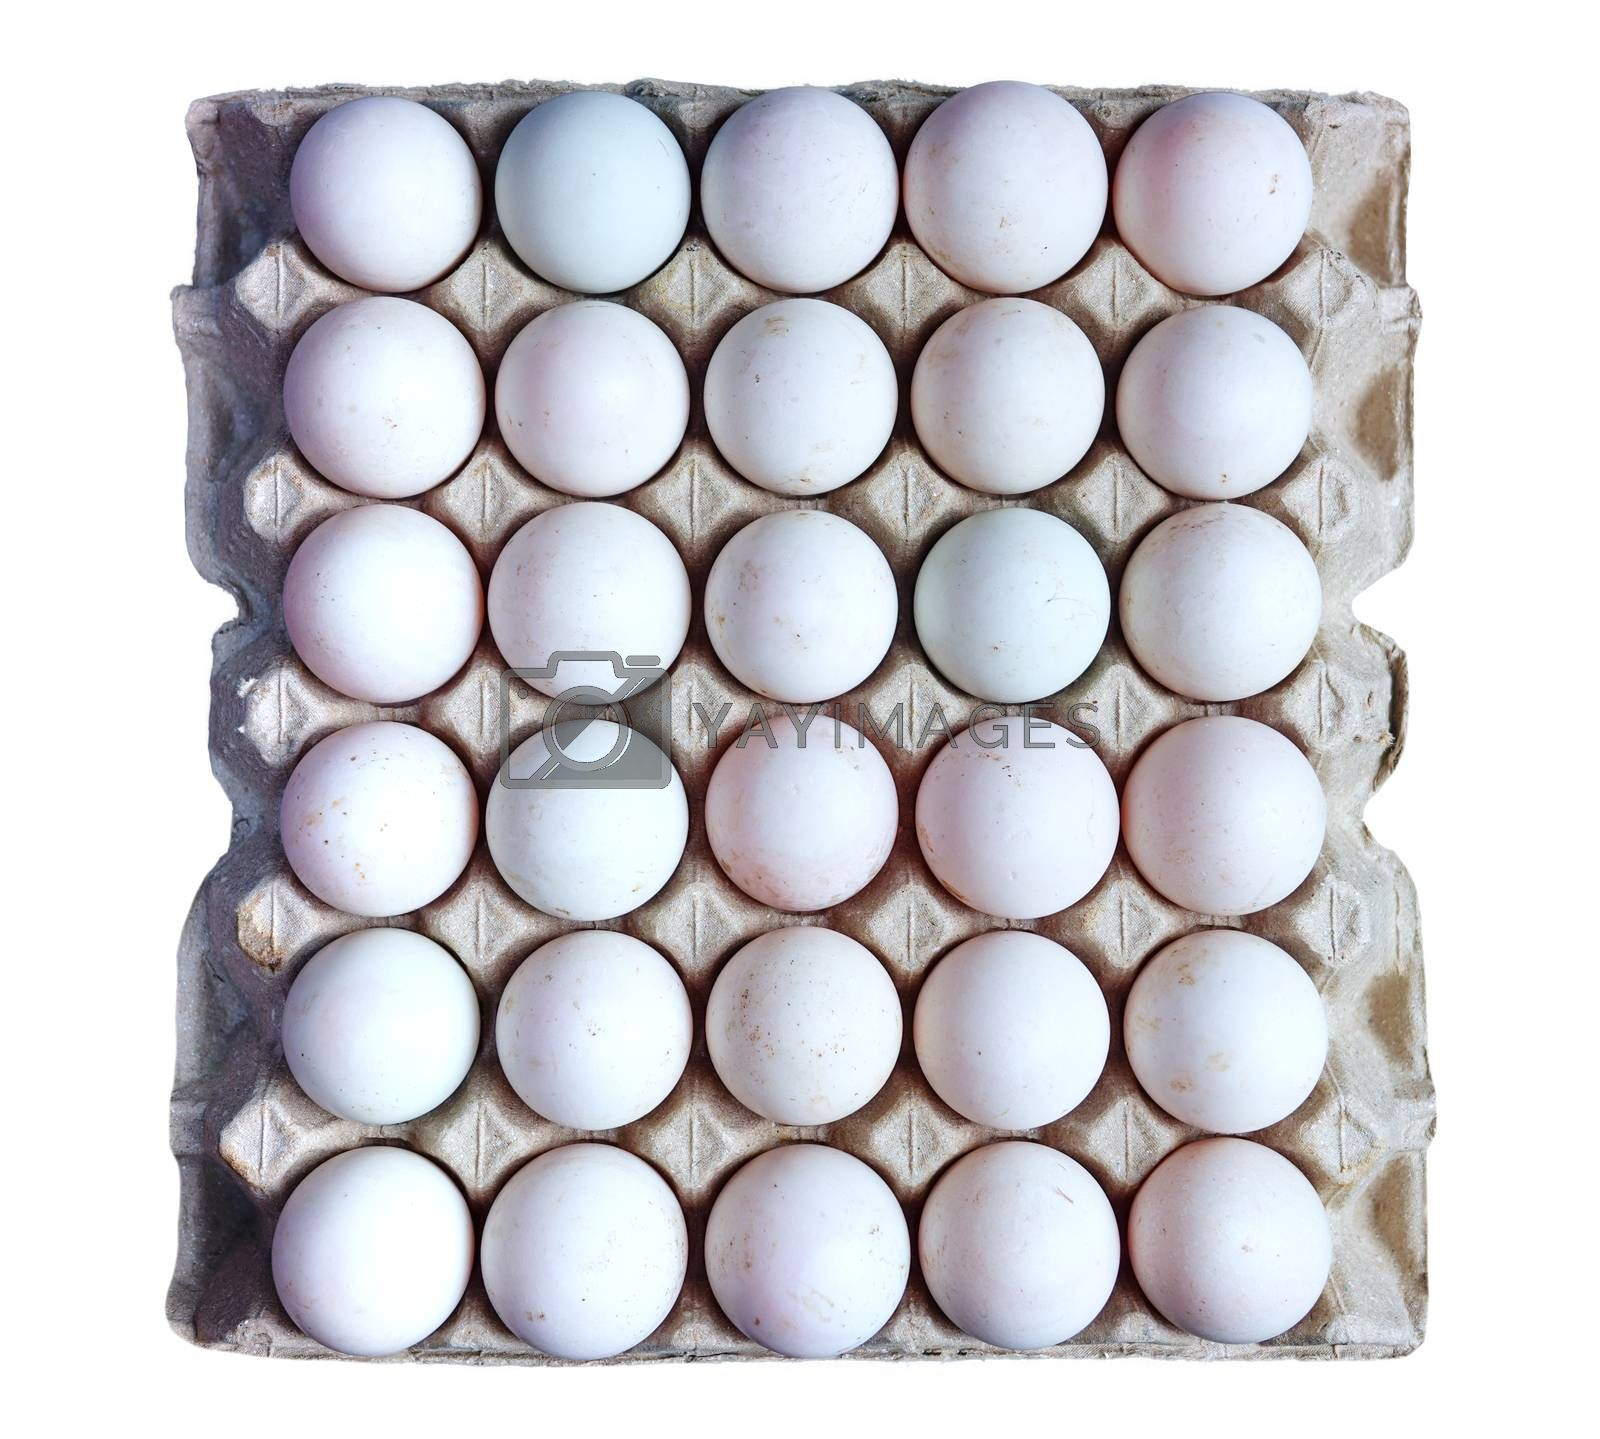 Fresh duck eggs collected from the farm are placed in a container of 30 eggs on a separate white background.